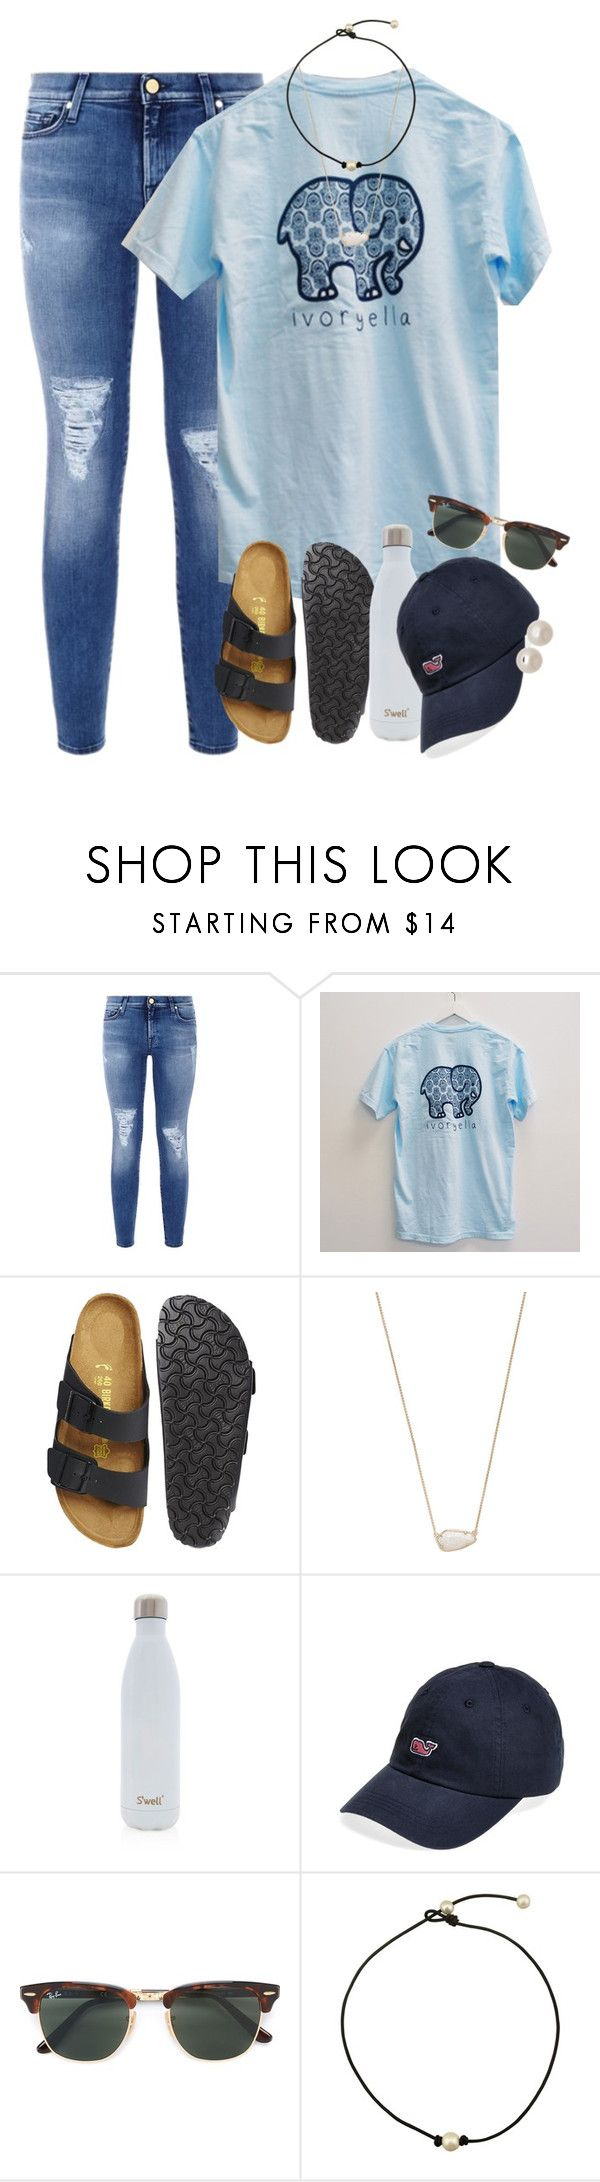 """""""ugh my sets suck comment some ways I should improve"""" by smbprep ❤ liked on Polyvore featuring 7 For All Mankind, Birkenstock, Kendra Scott, S'well, Vineyard Vines, Ray-Ban and Honora"""